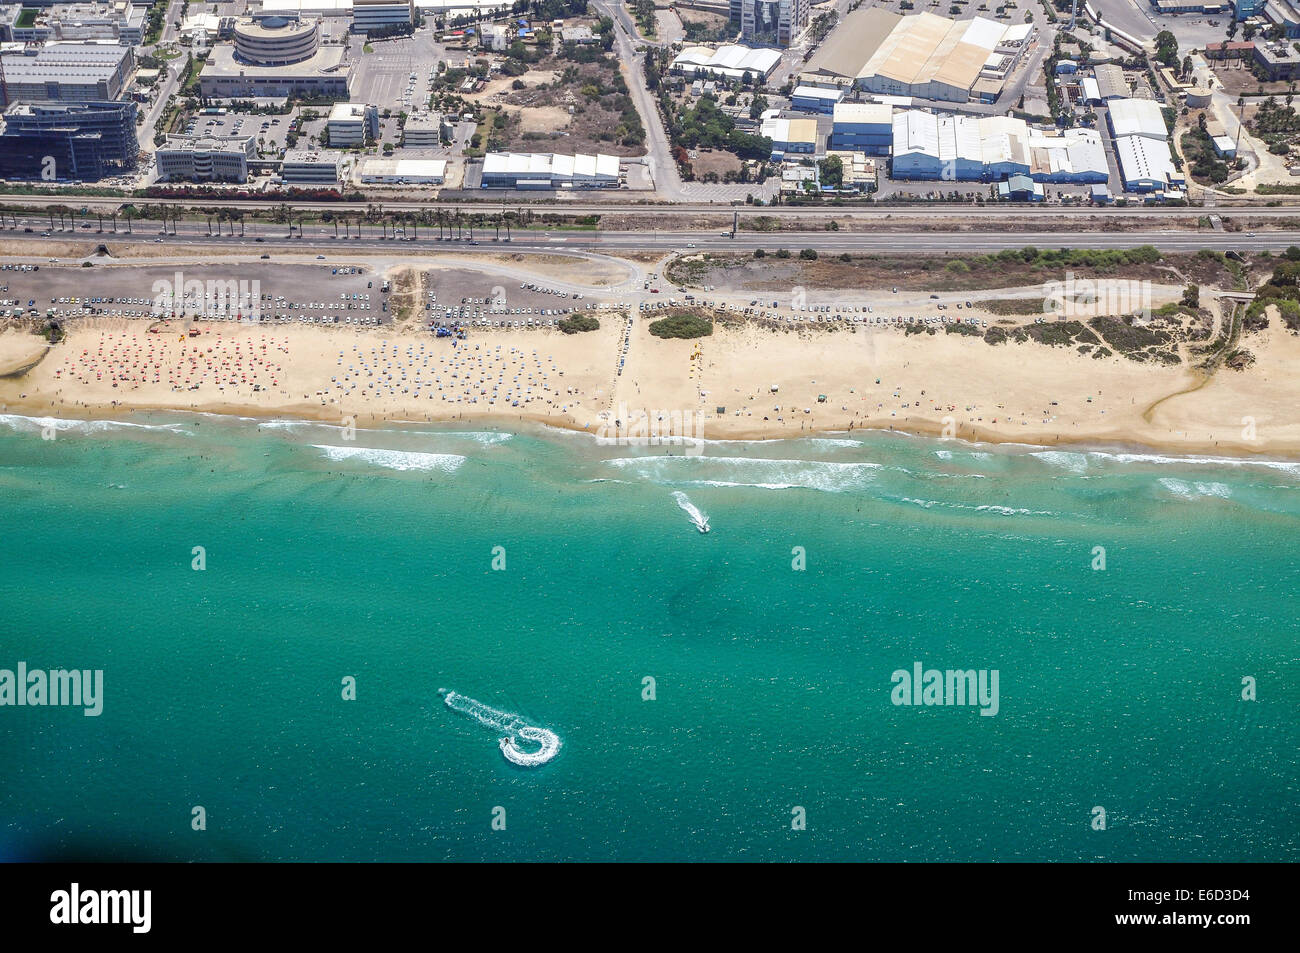 Aerial Photography of Haifa, Israel - Stock Image